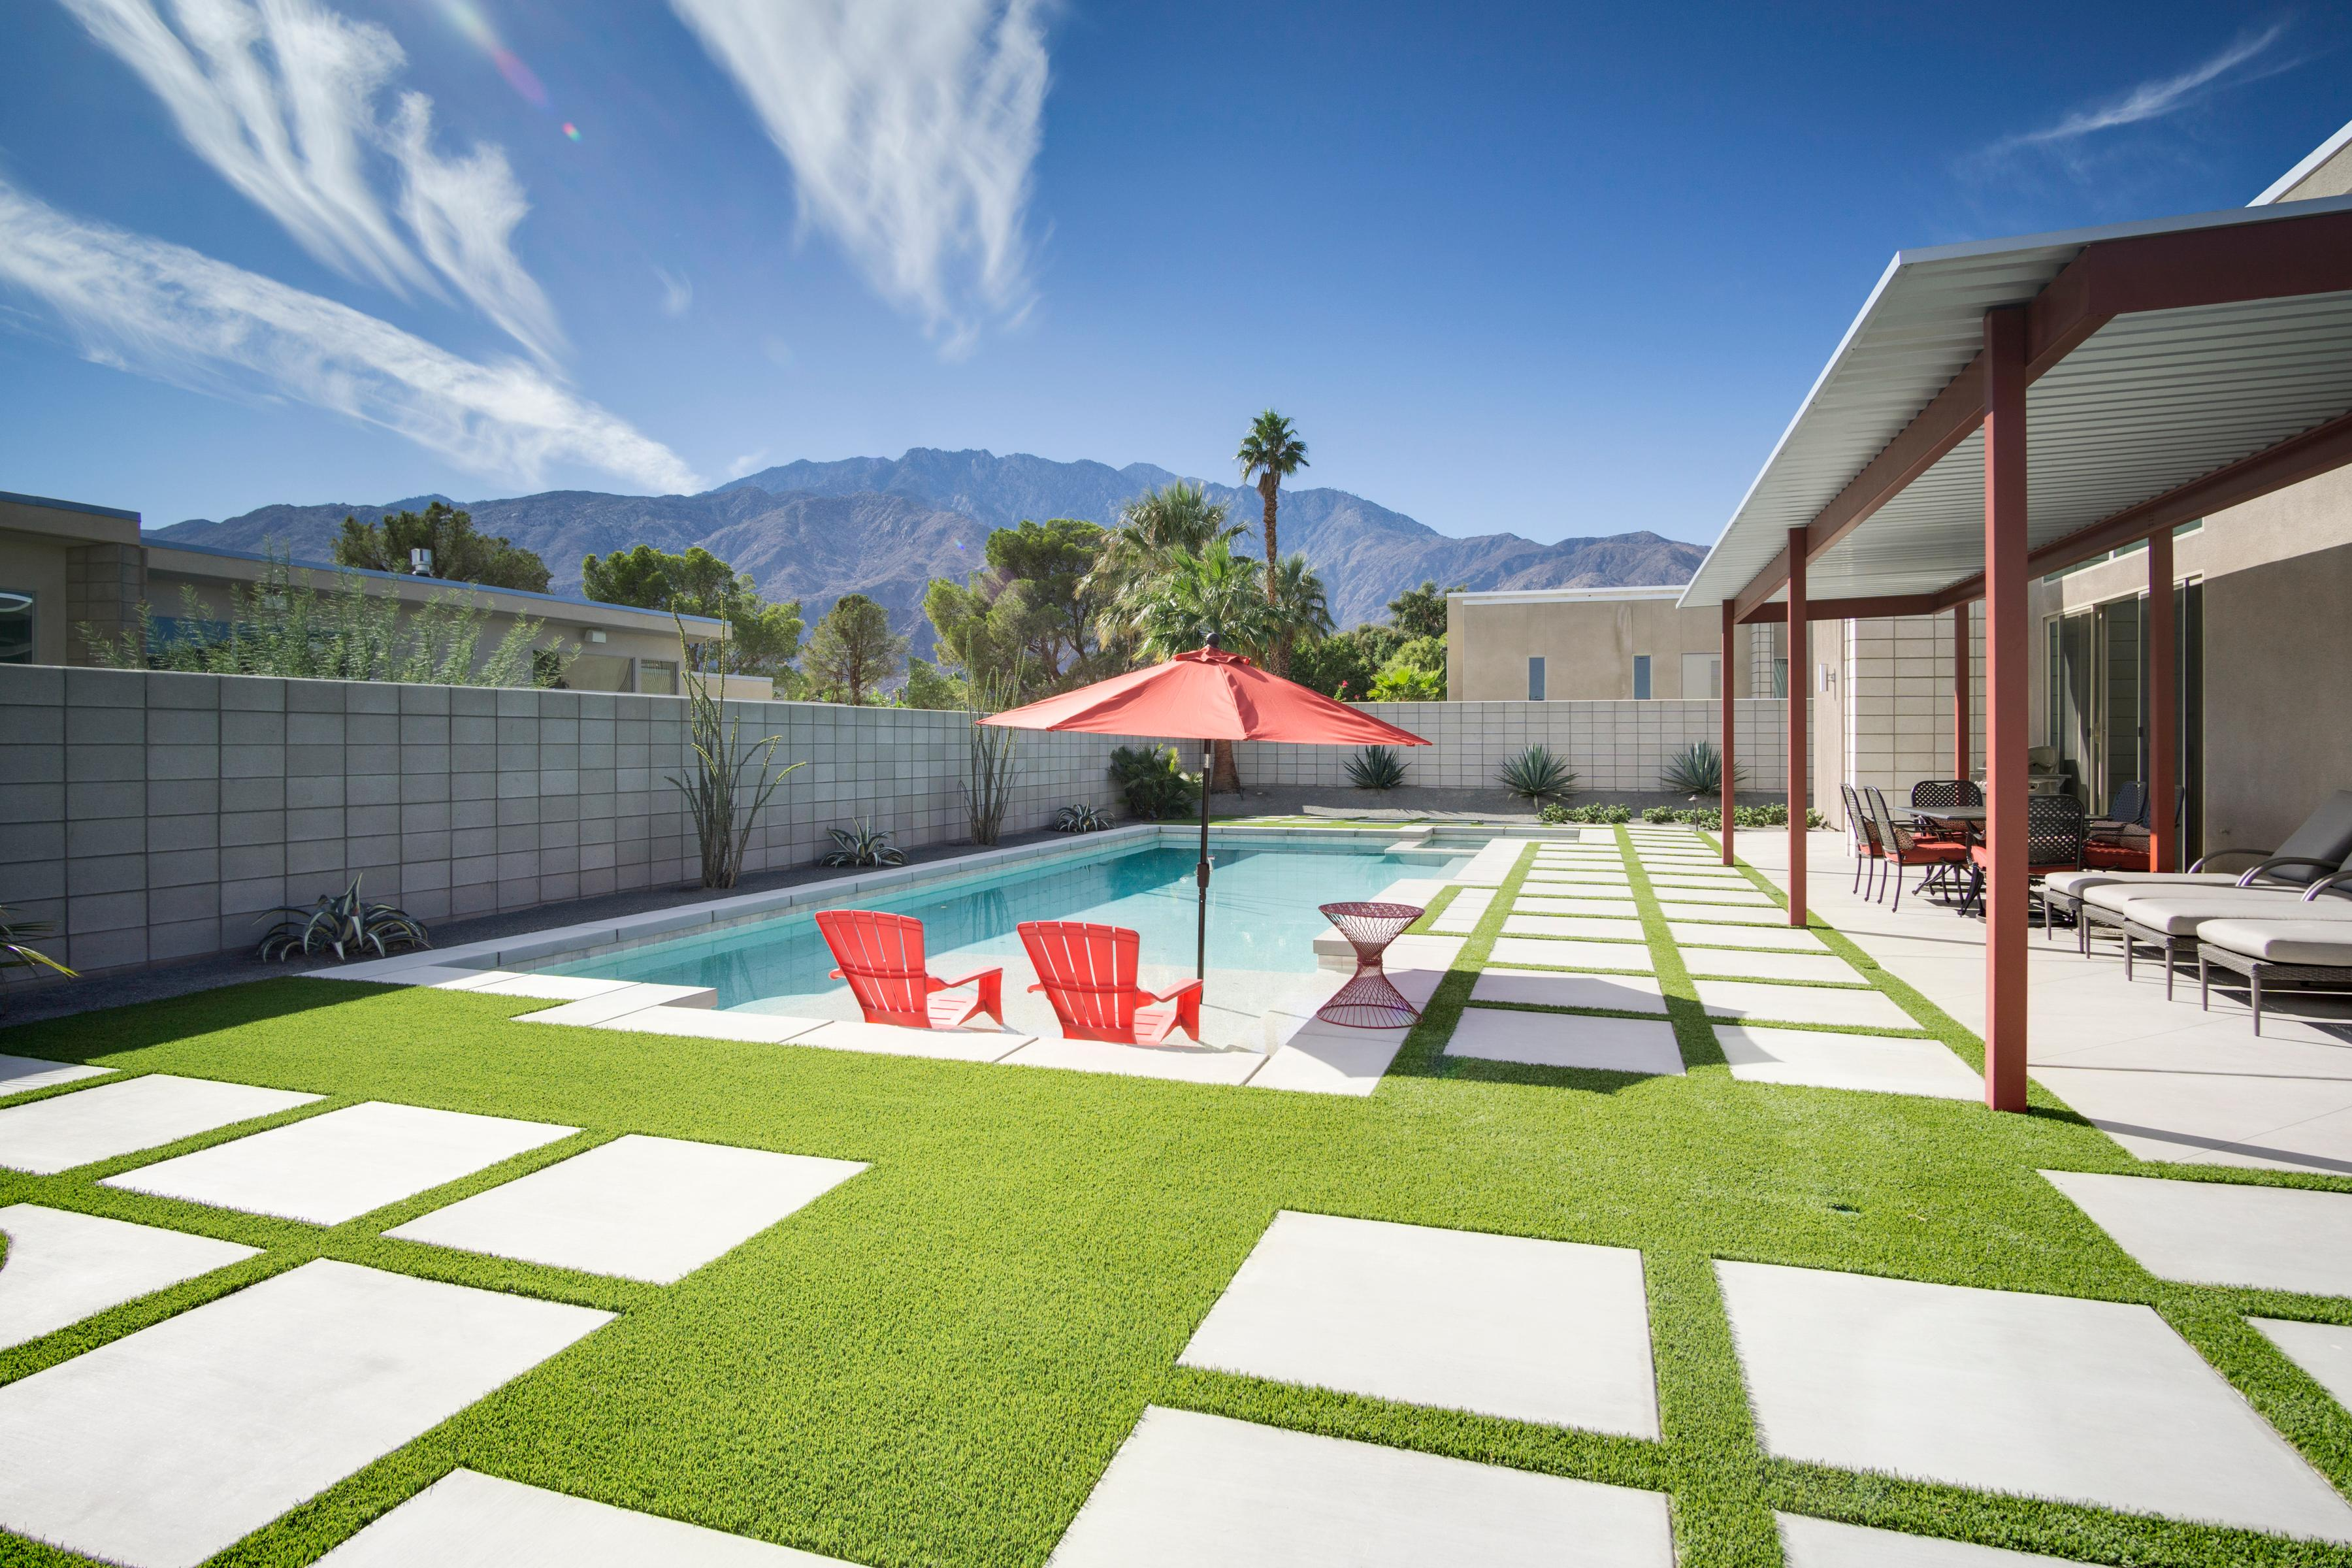 Property Image 1 - Stunning Mid Century Masterpiece with Large Pool Deck